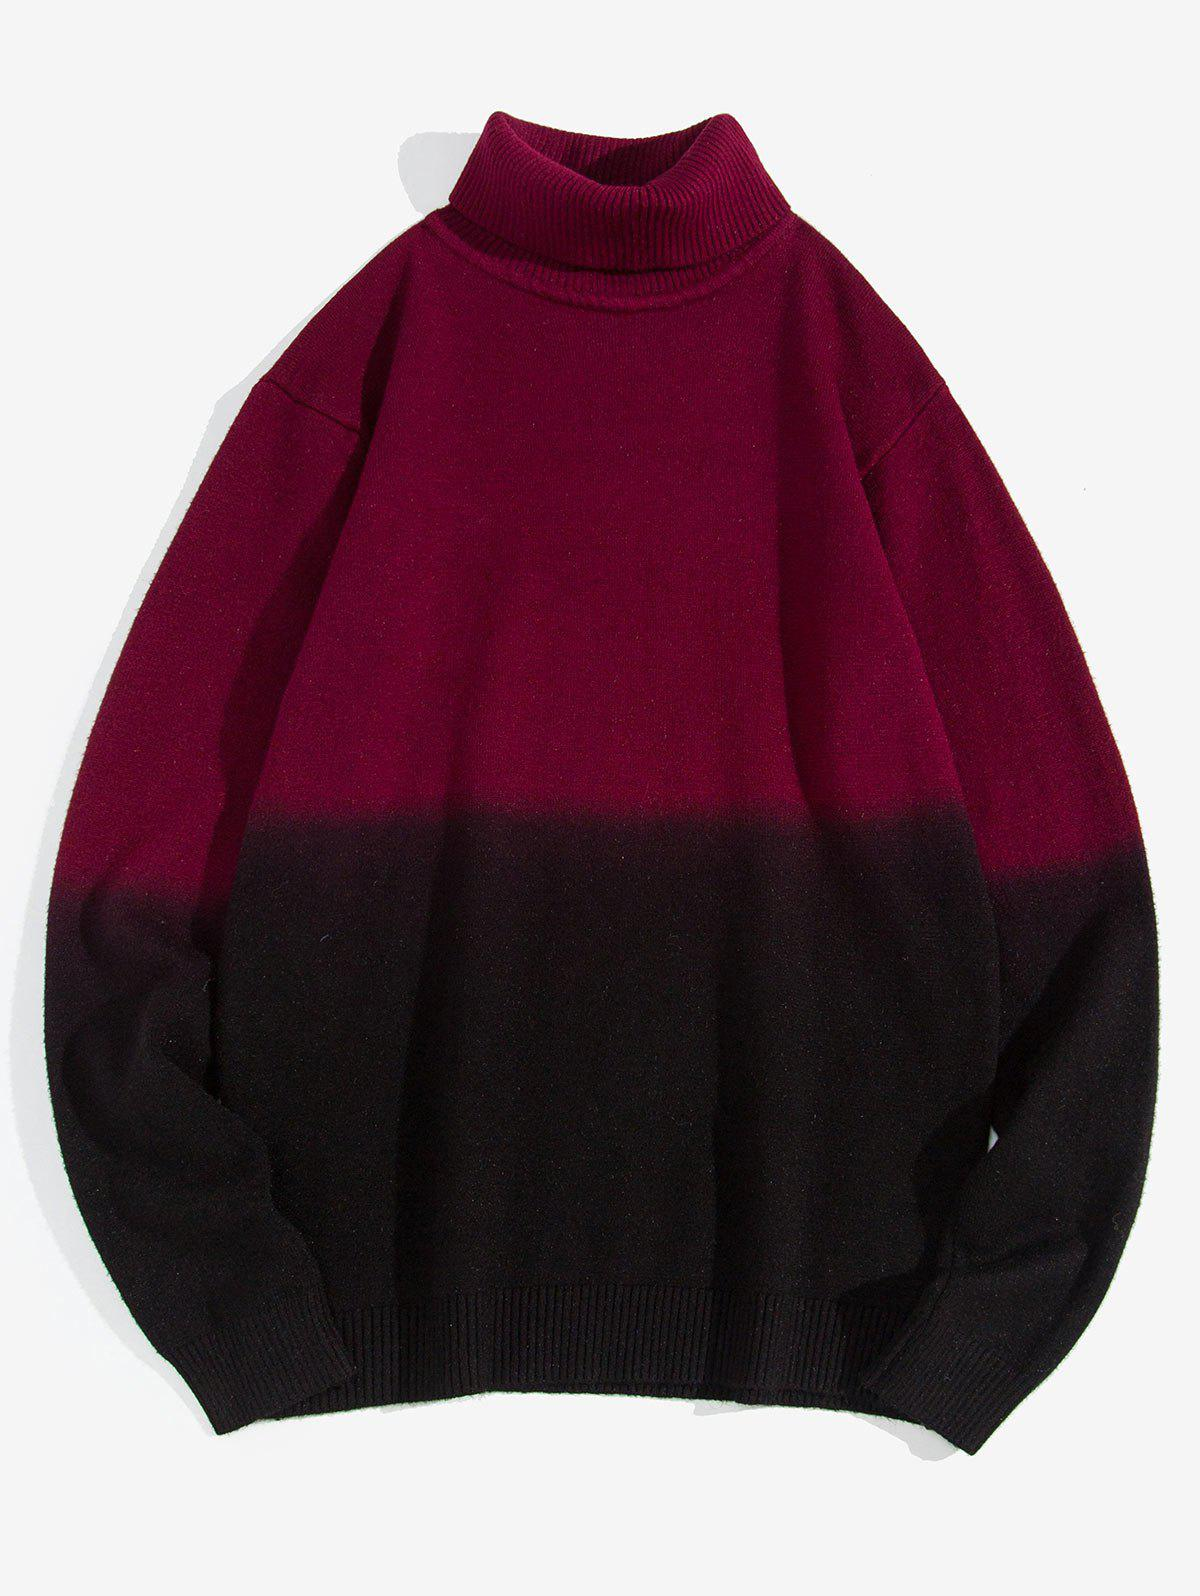 Turtleneck Two-tone Ombre Sweater - RED WINE XS